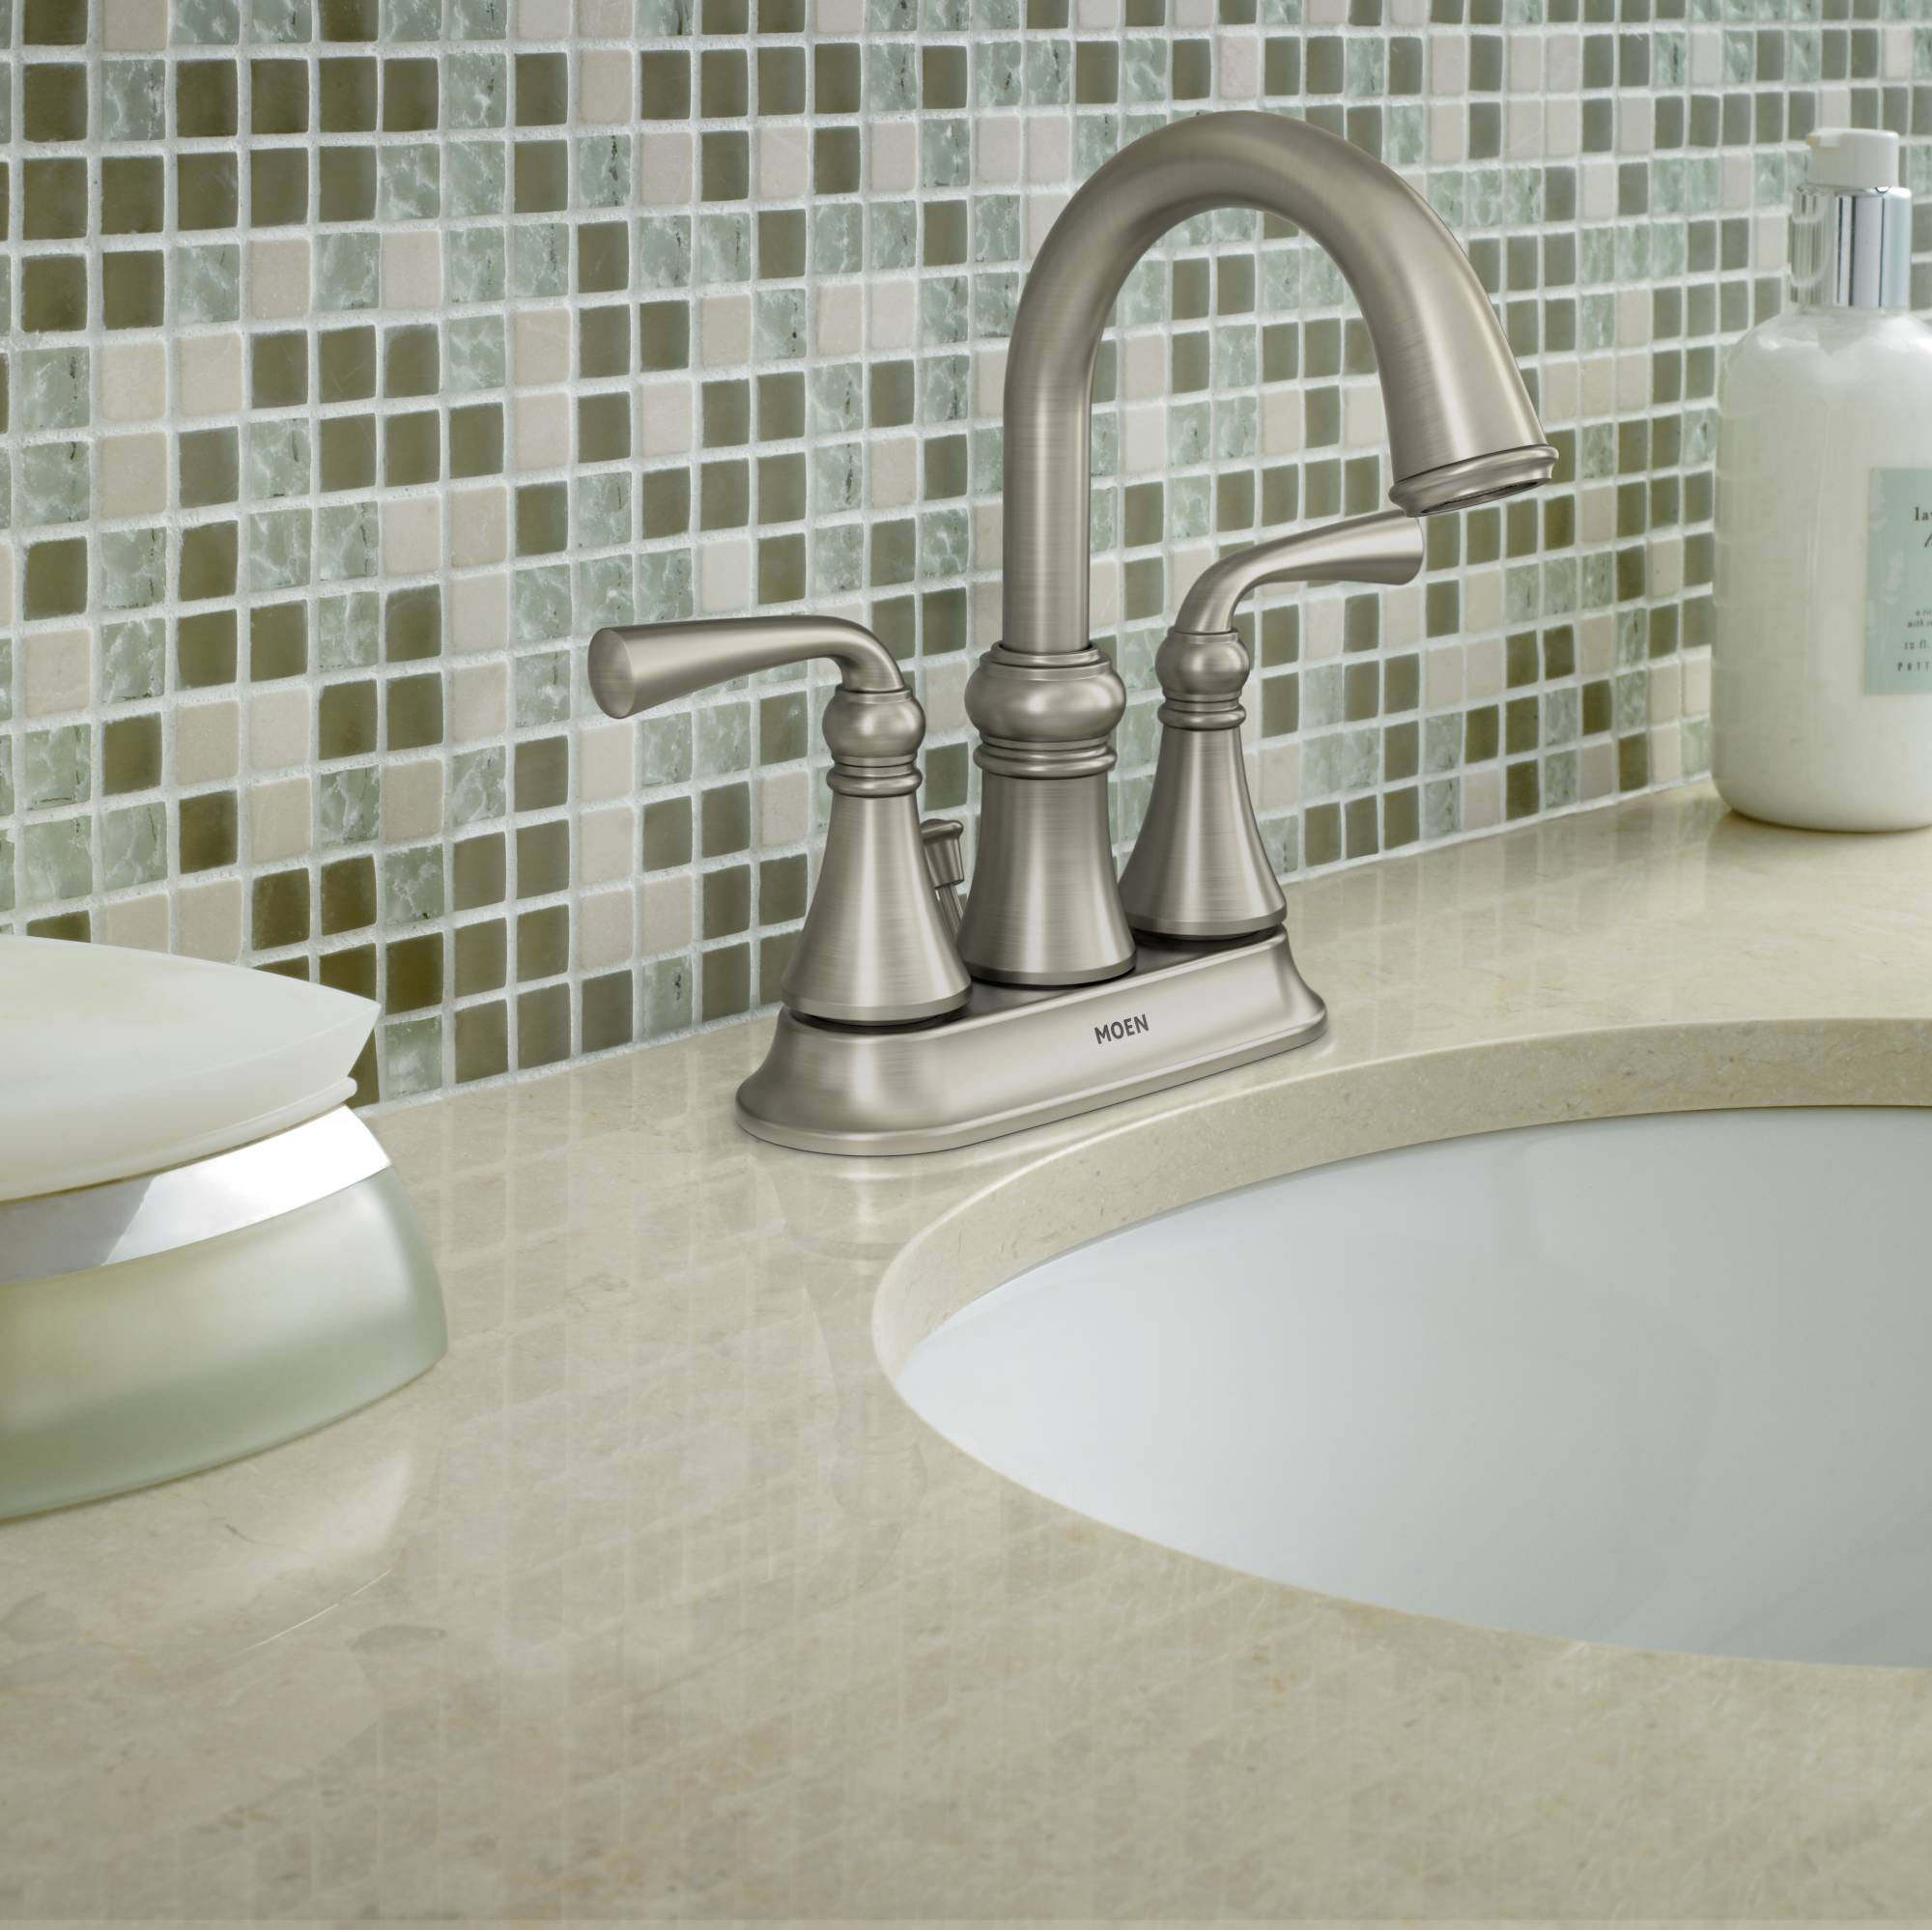 Consumers Have More Options in the Bath with New Moen® Faucets